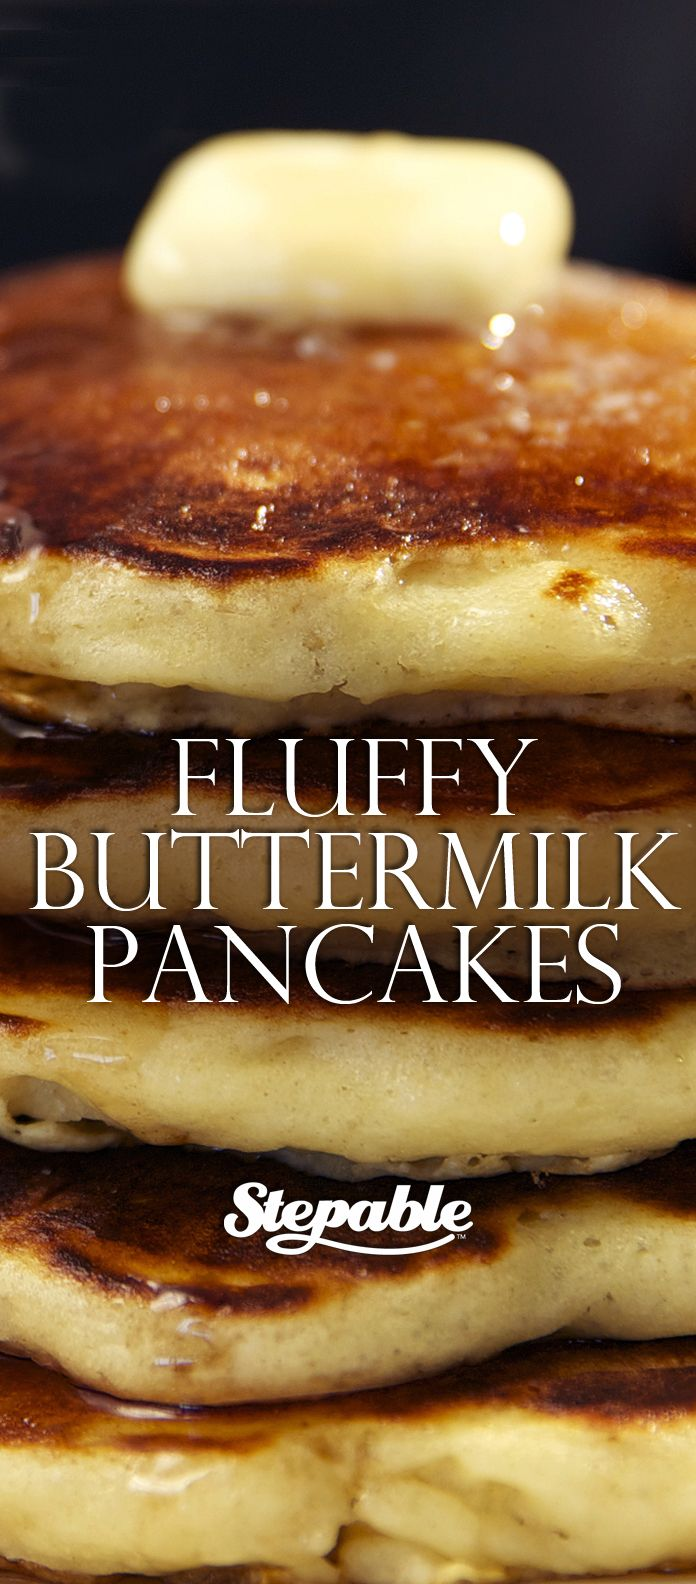 The absolute tastiest, fluffiest buttermilk pancakes recipe EVER with a simple but important tip to make sure they come out perfect every time.